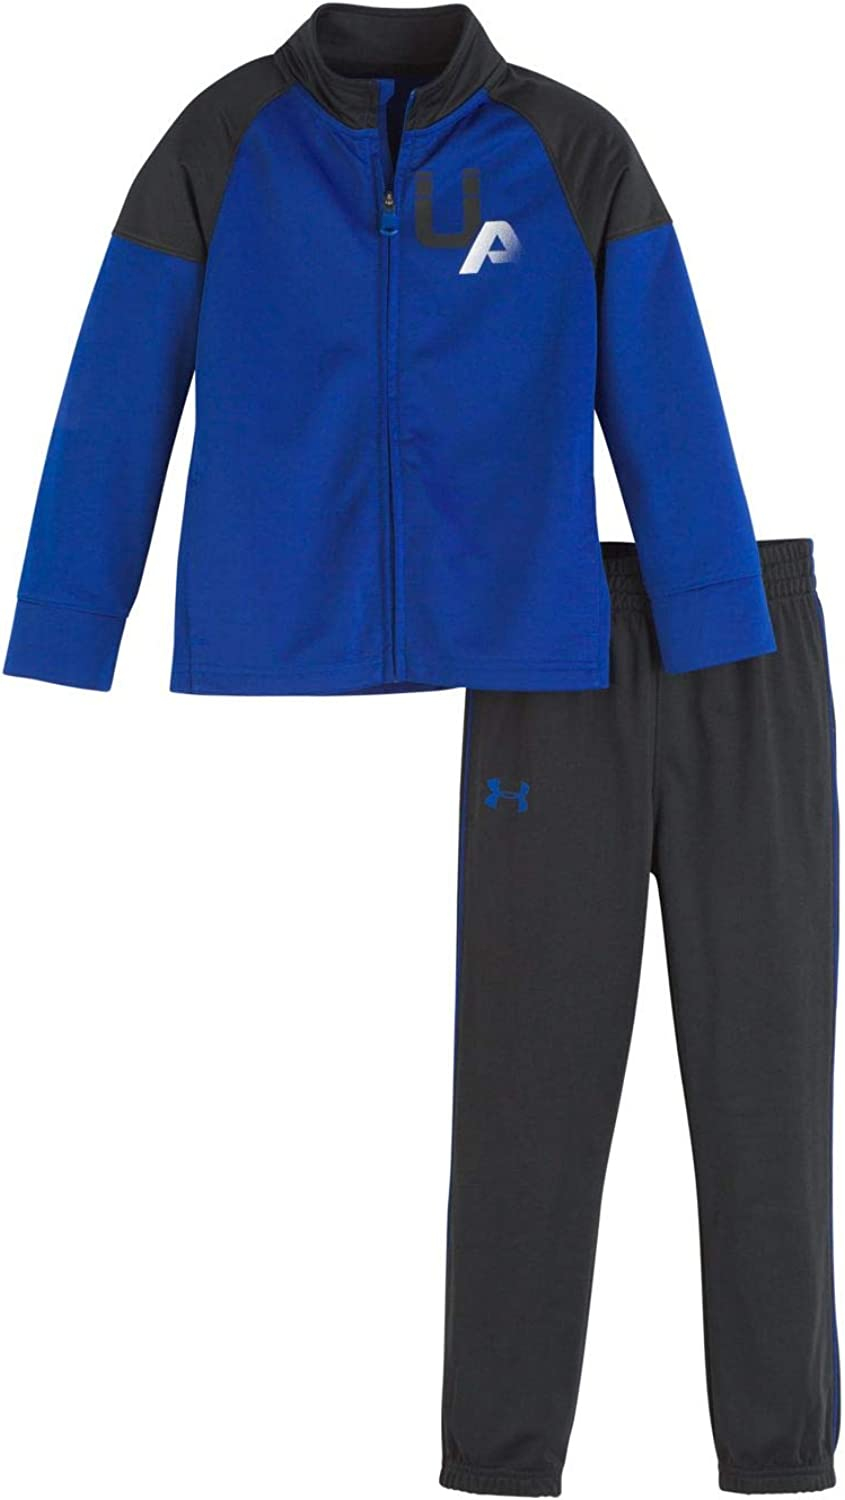 Under Armour Boys Zip Jacket and Pant Set